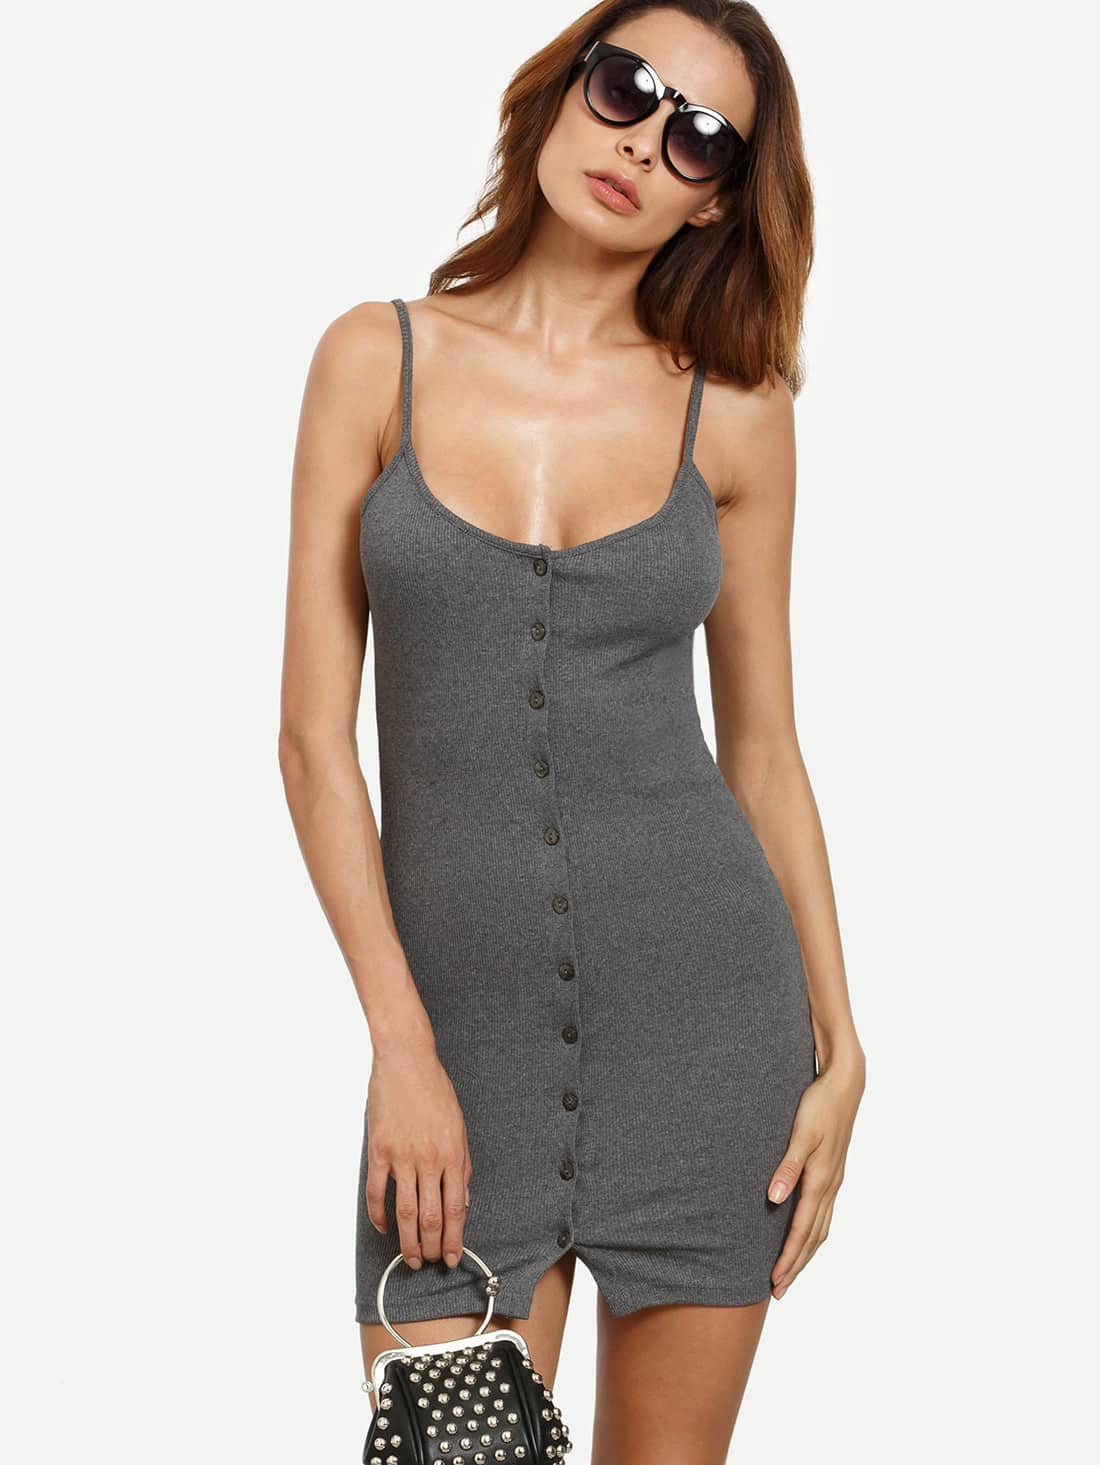 Grey Buttoned Front Ribbed Cami Dress dress160621102